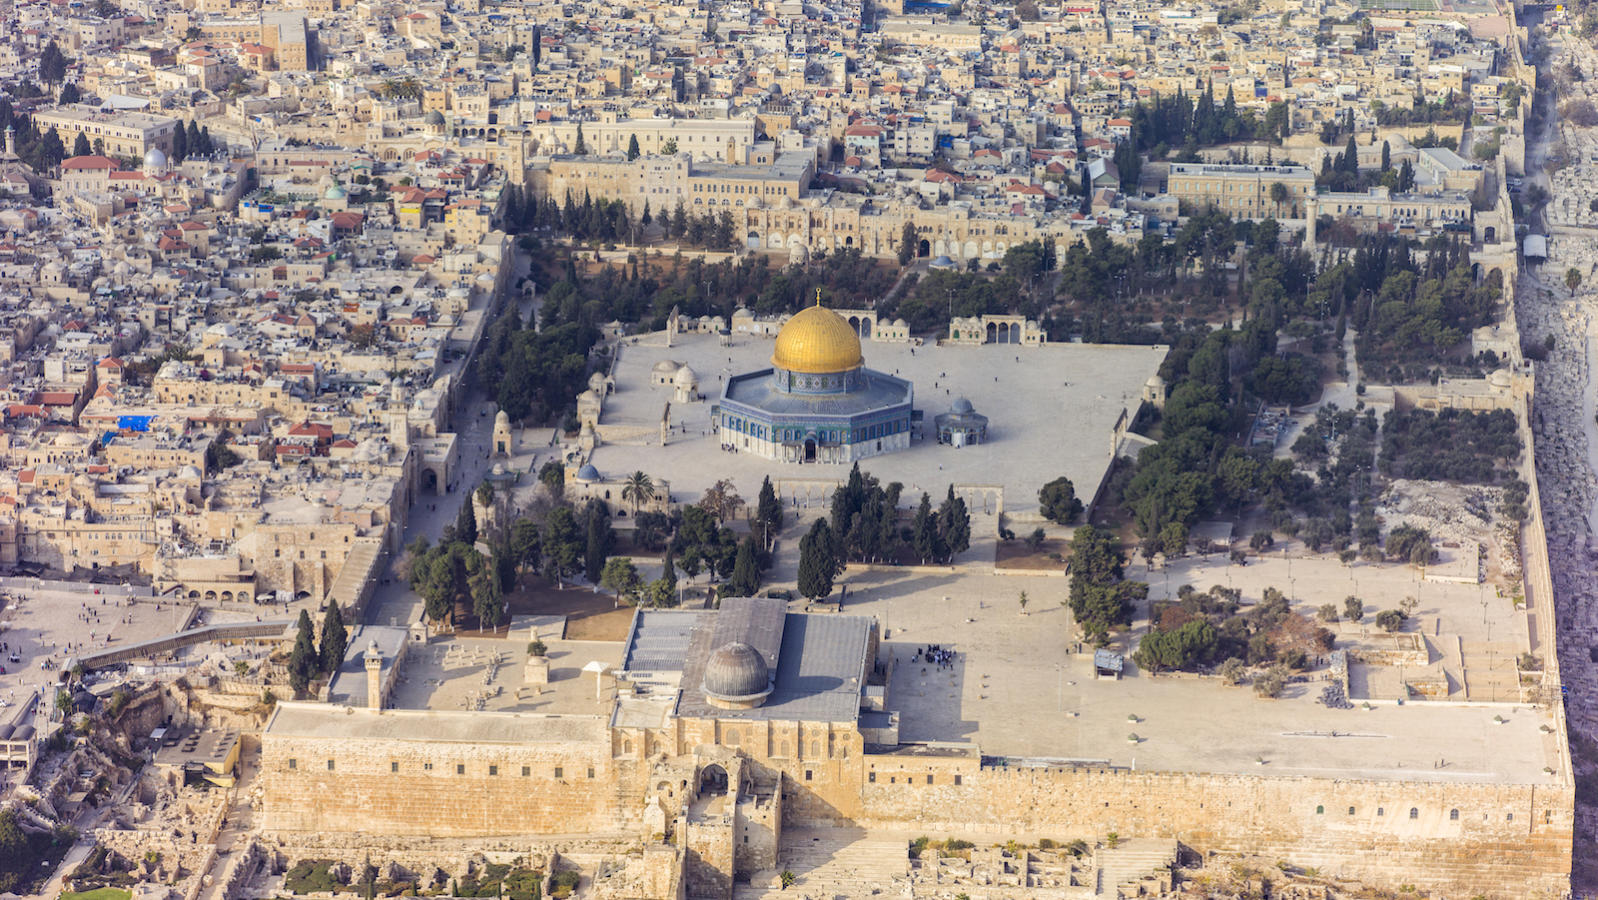 andrew-shiva-wikipedia-temple-mount-aerial-view-1598x900